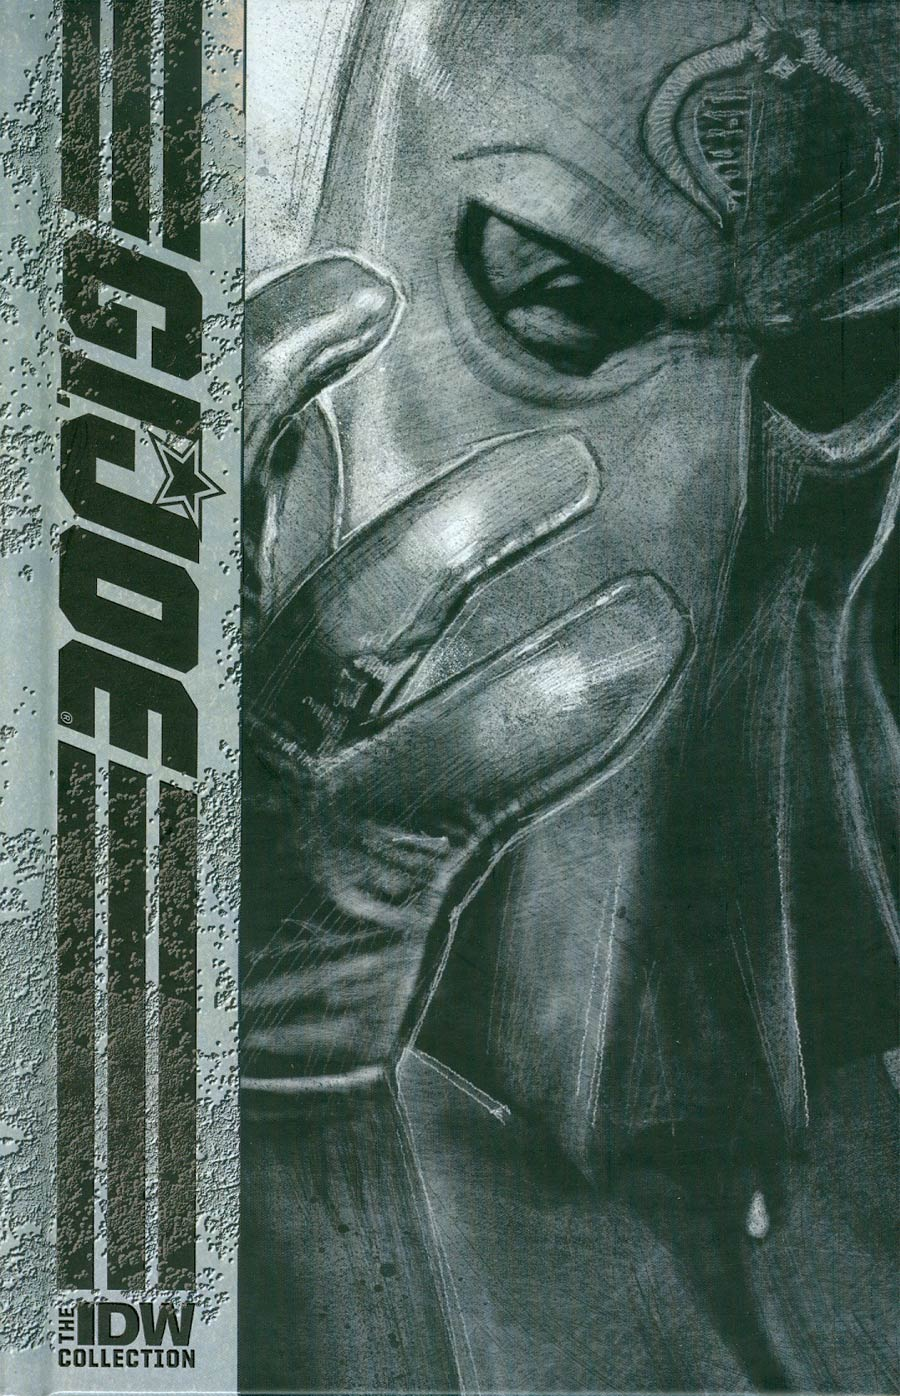 GI Joe IDW Collection Vol 5 HC